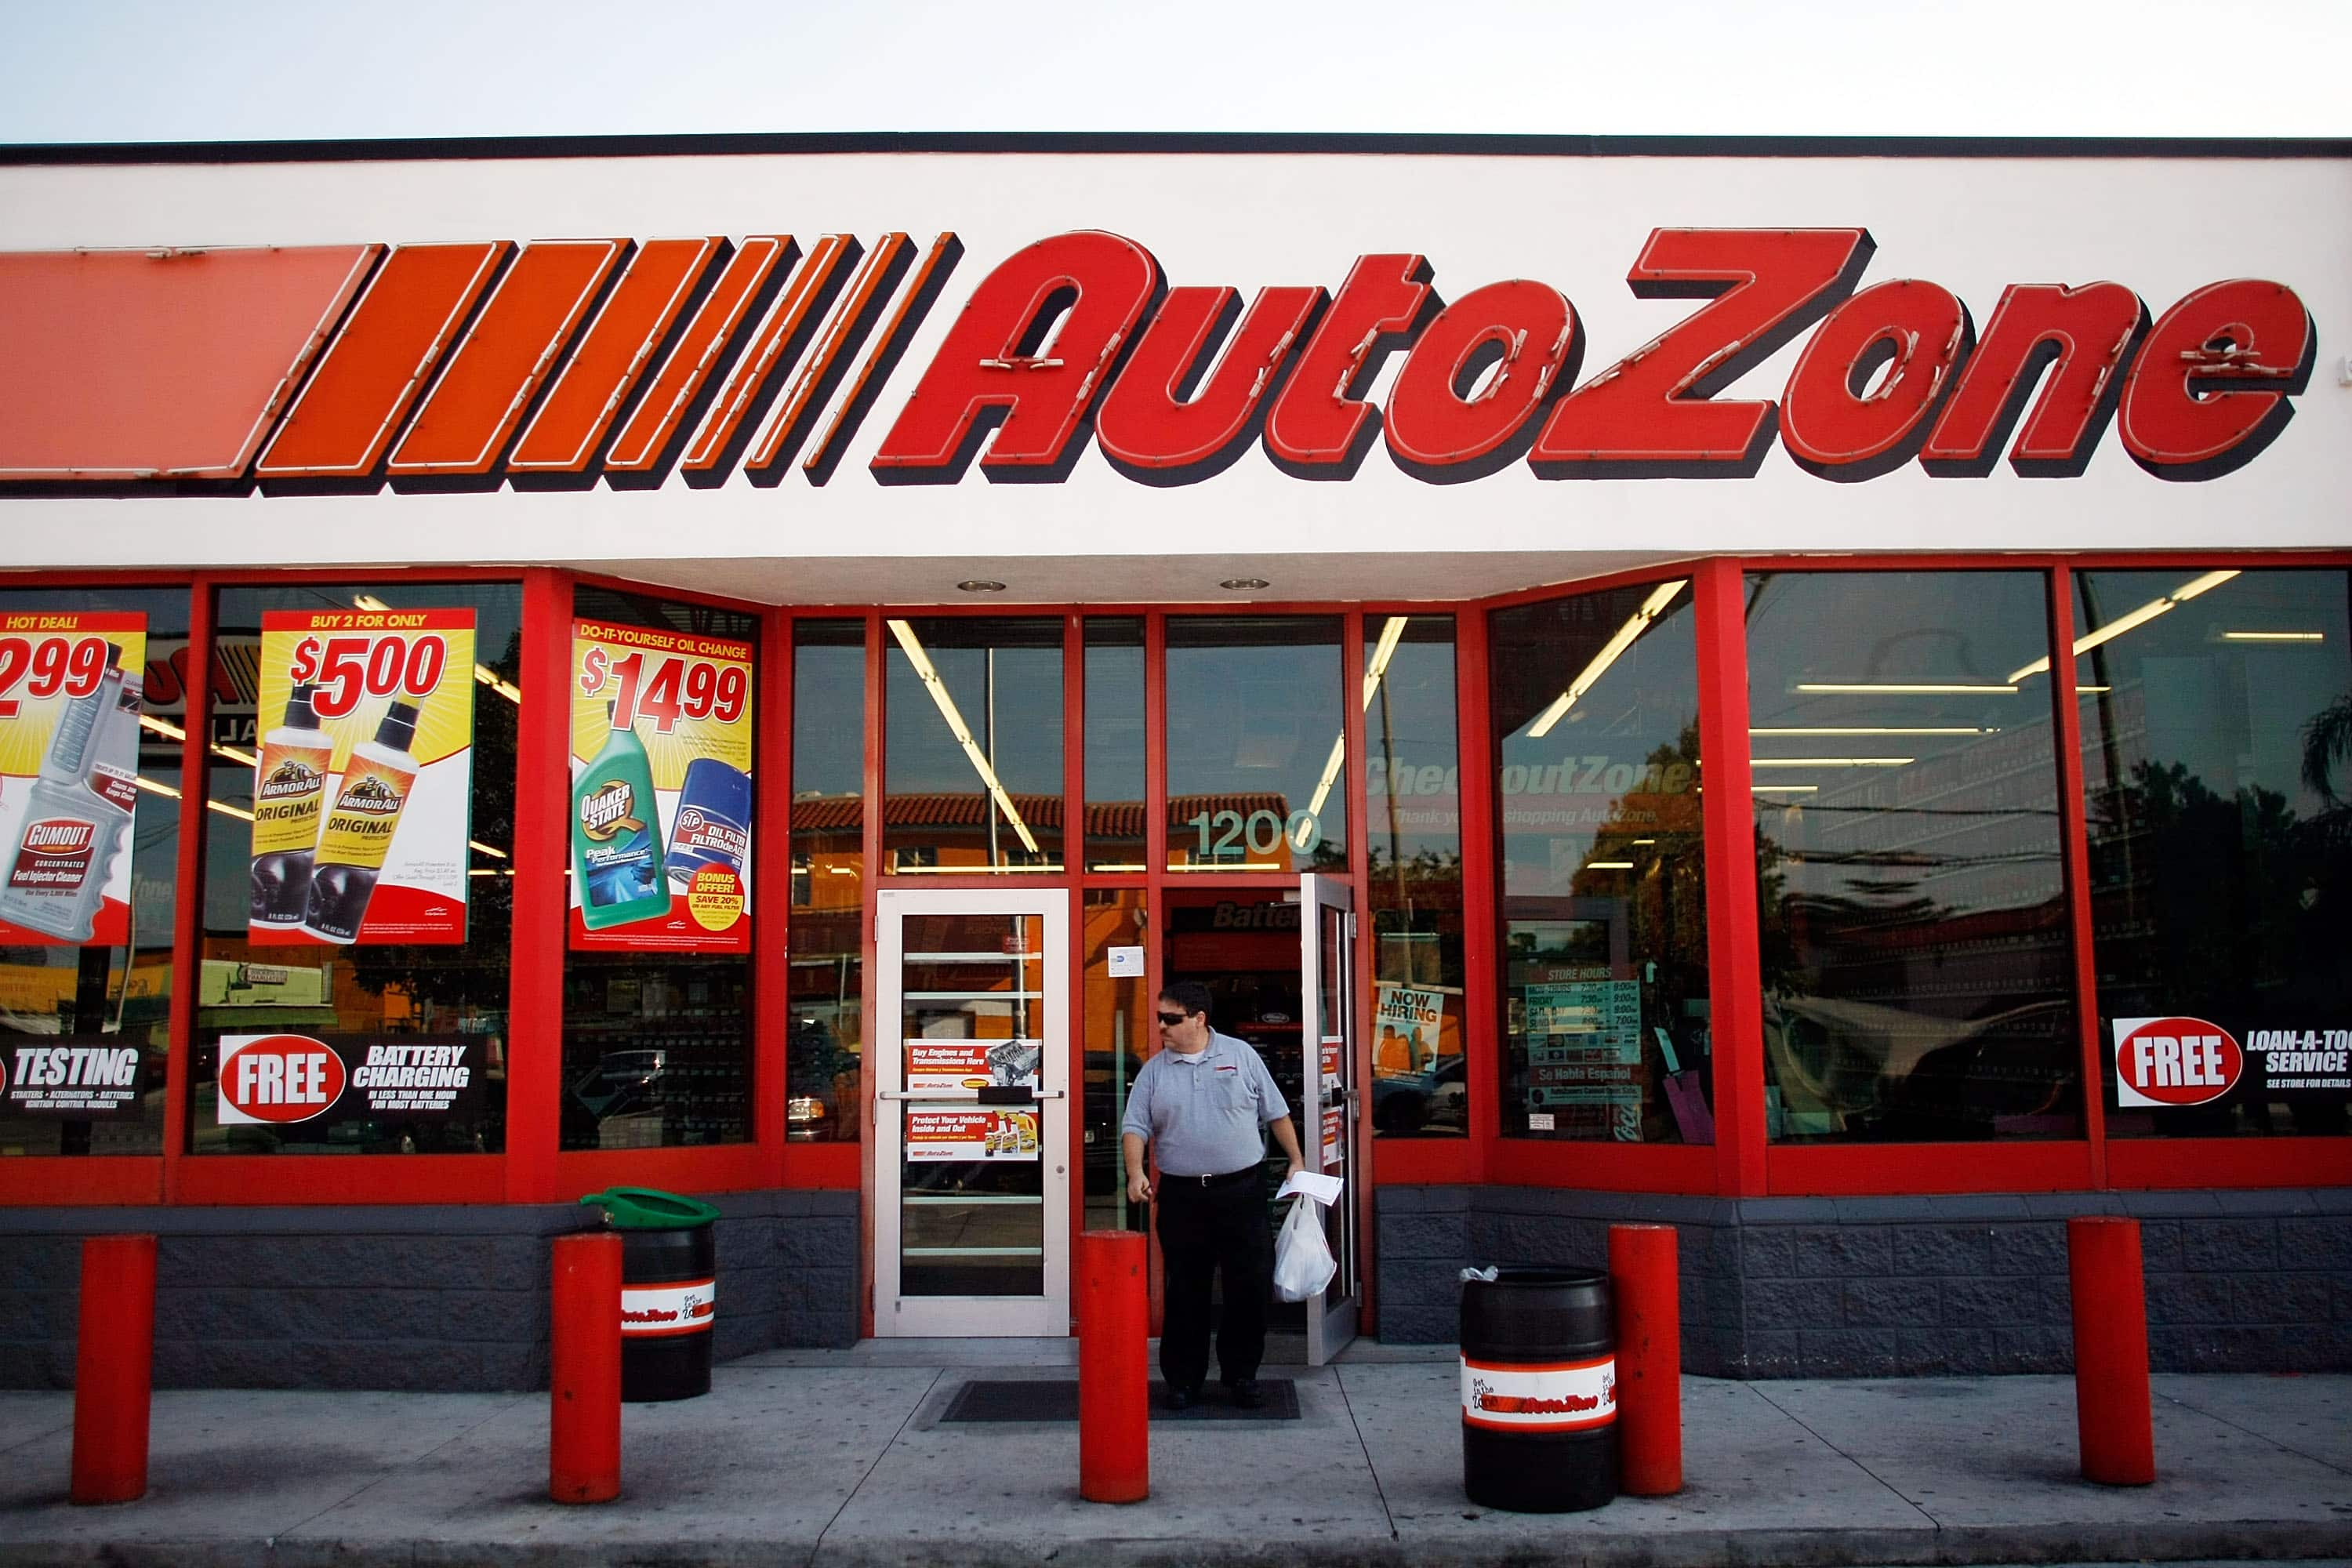 15 off 50 in store autozone coupon for signing up for texts 15 off 50 in store autozone coupon for signing up for texts solutioingenieria Choice Image